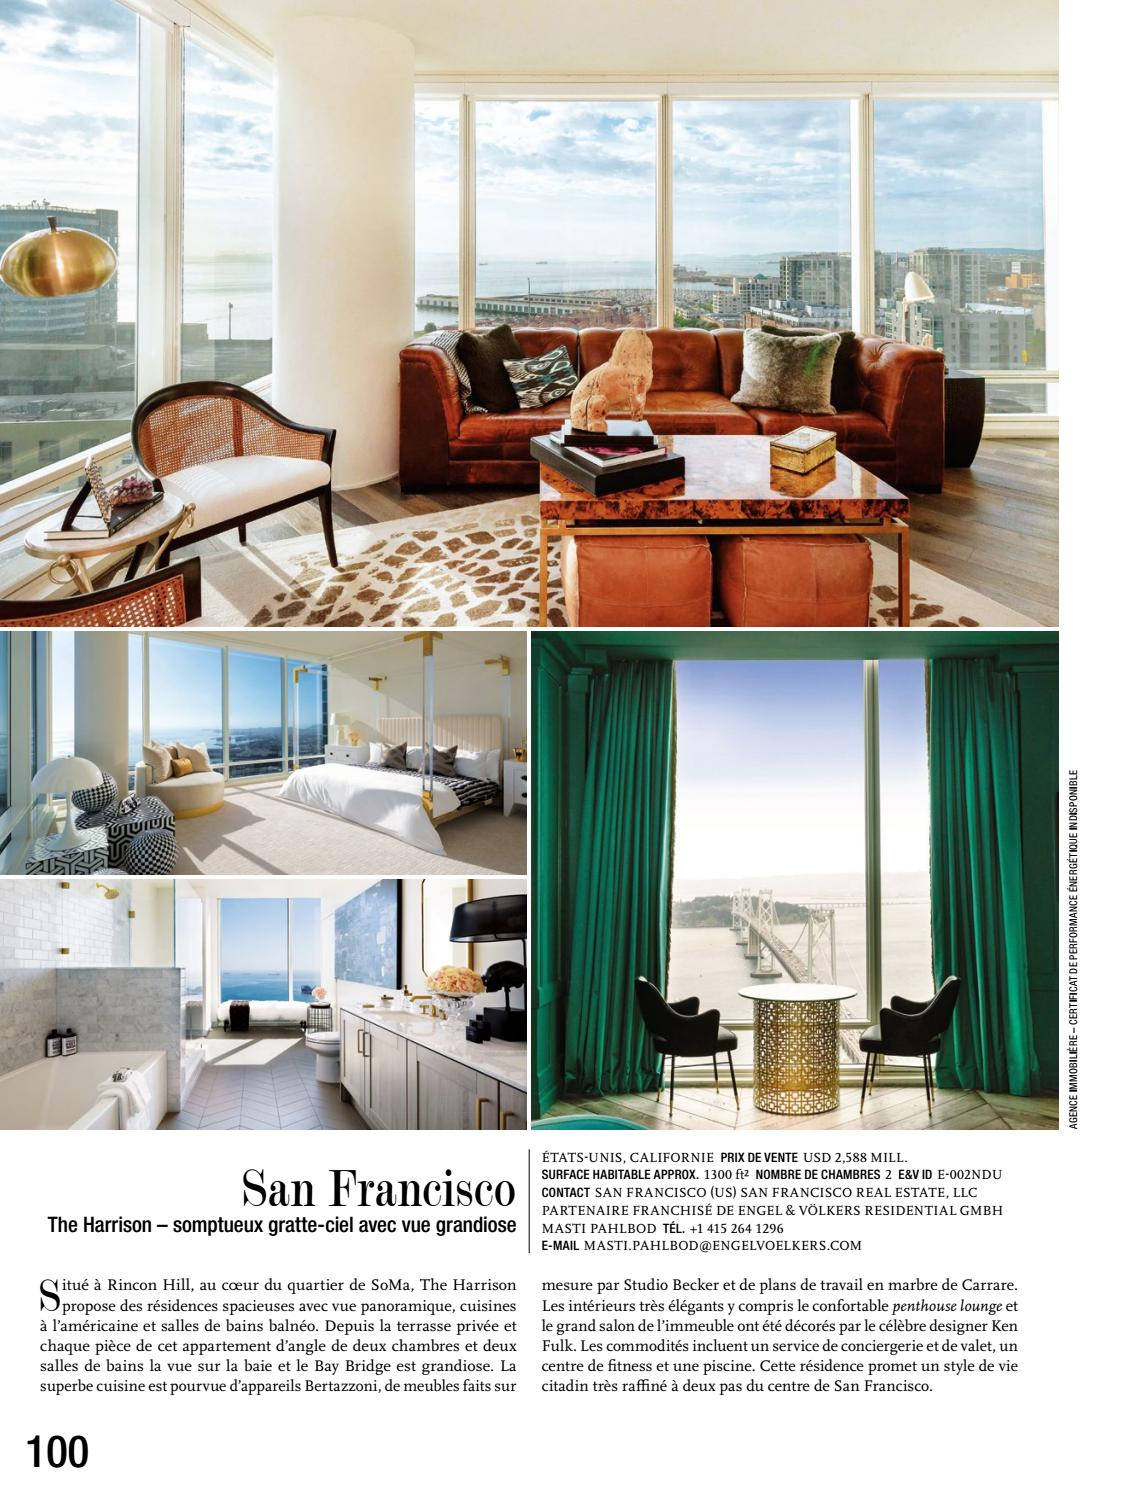 Gg Magazine 04/18 France By Gg-Magazine - Issuu à Agence De La Terrasse